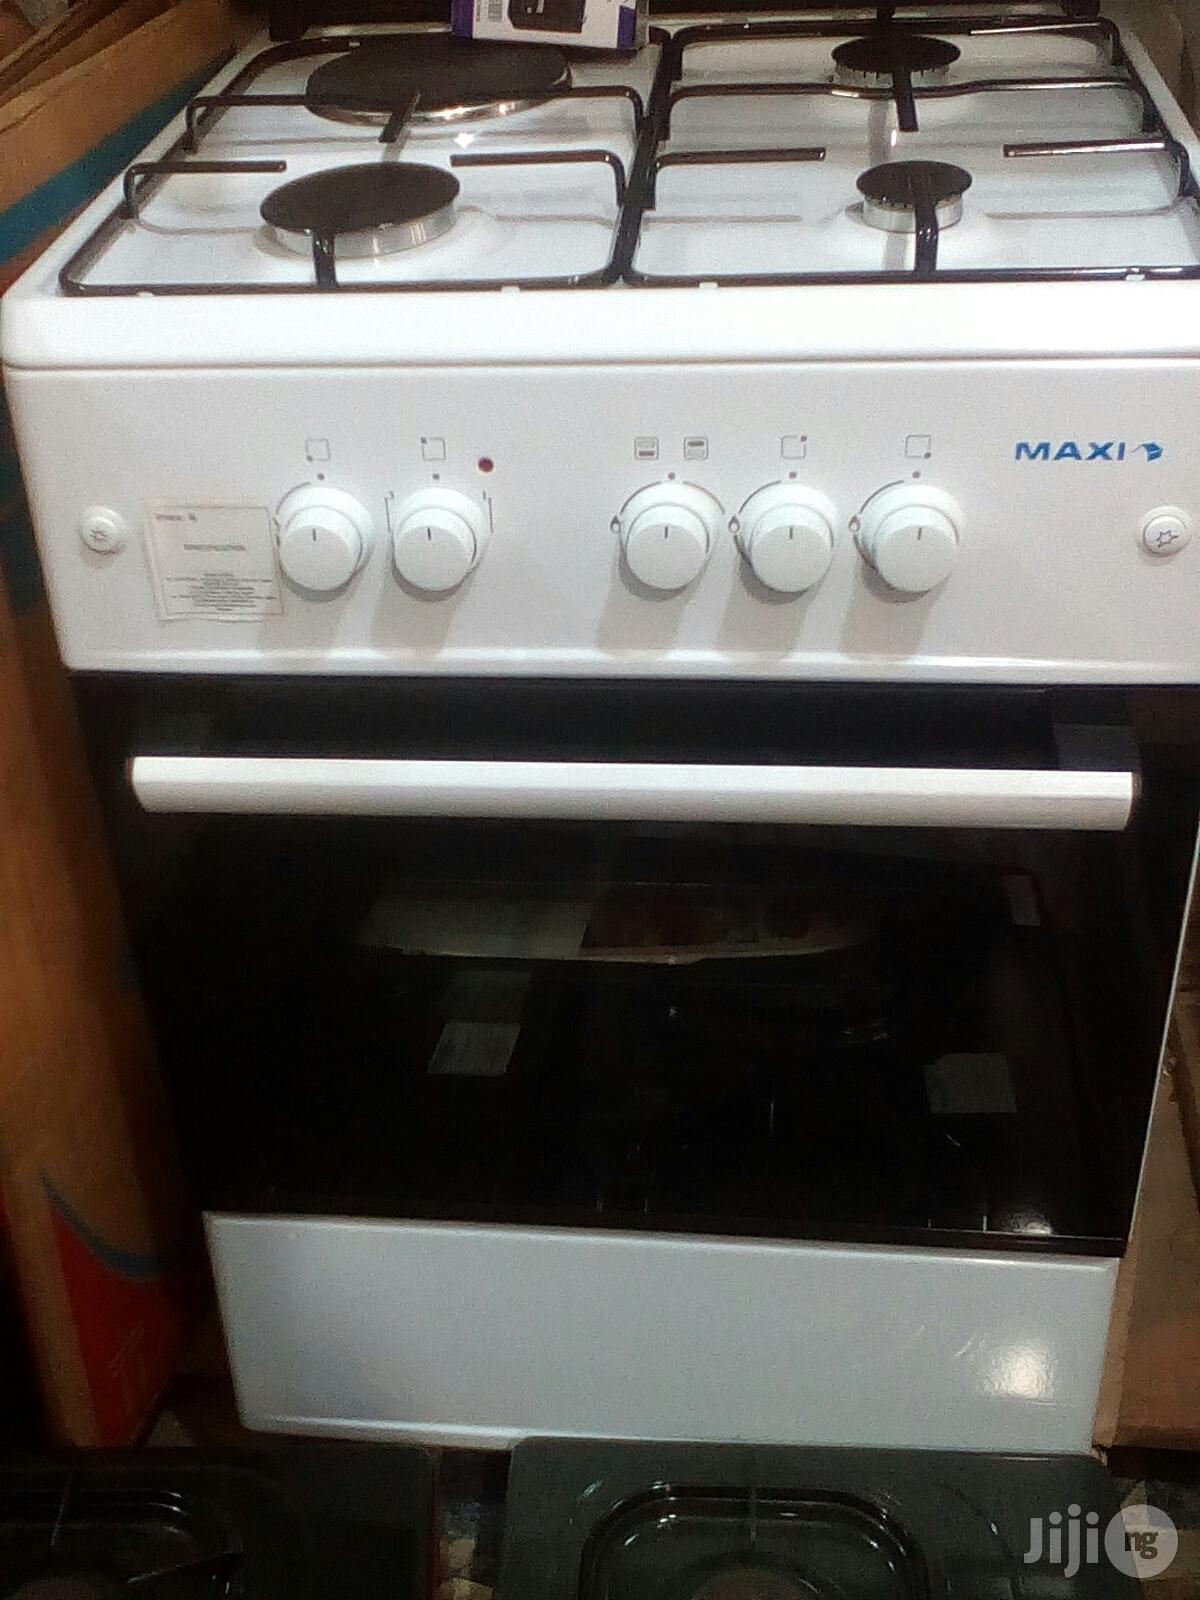 LG Maxi Gas Cooker | Kitchen Appliances for sale in Ikorodu, Lagos State, Nigeria